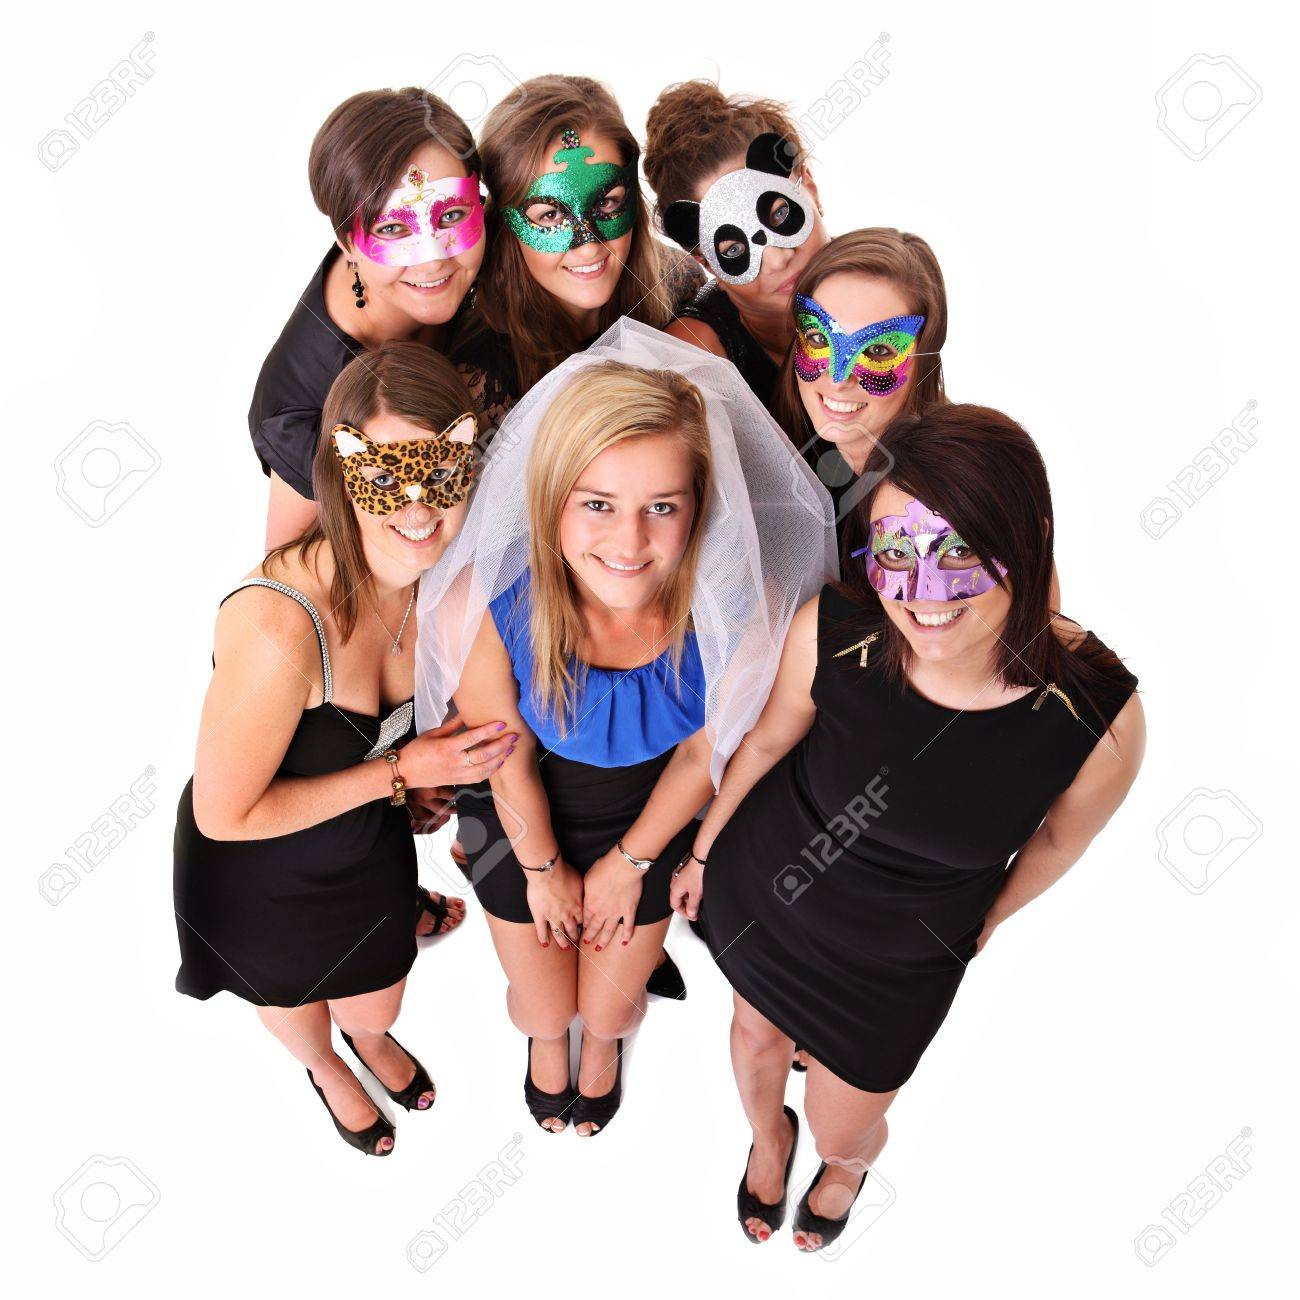 A portrait of seven girlfriends in carnival masks smiling over white background Stock Photo - 13910684